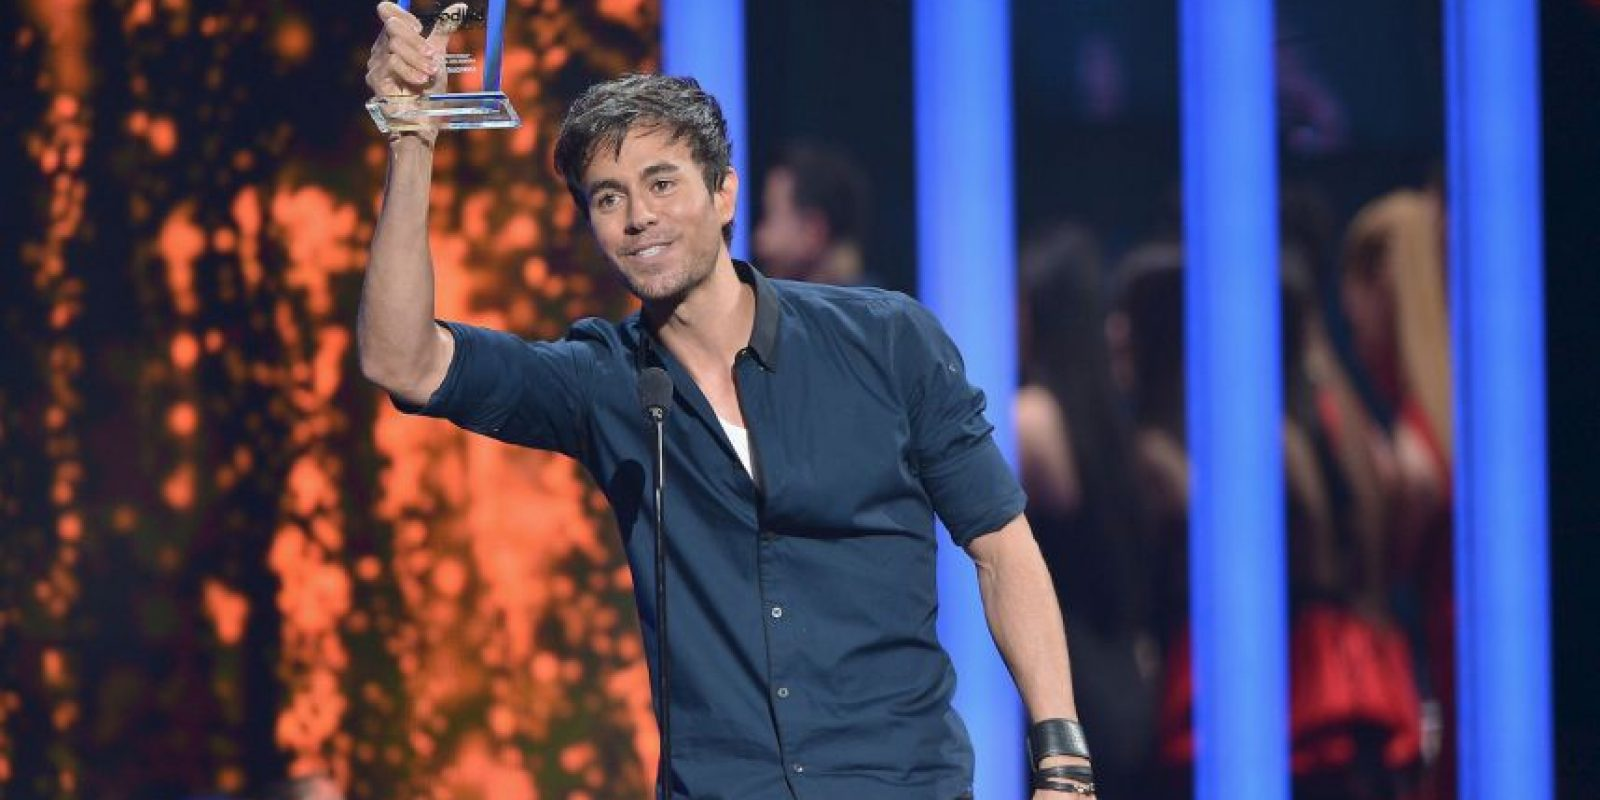 Enrique Inglesias Foto: Getty Images